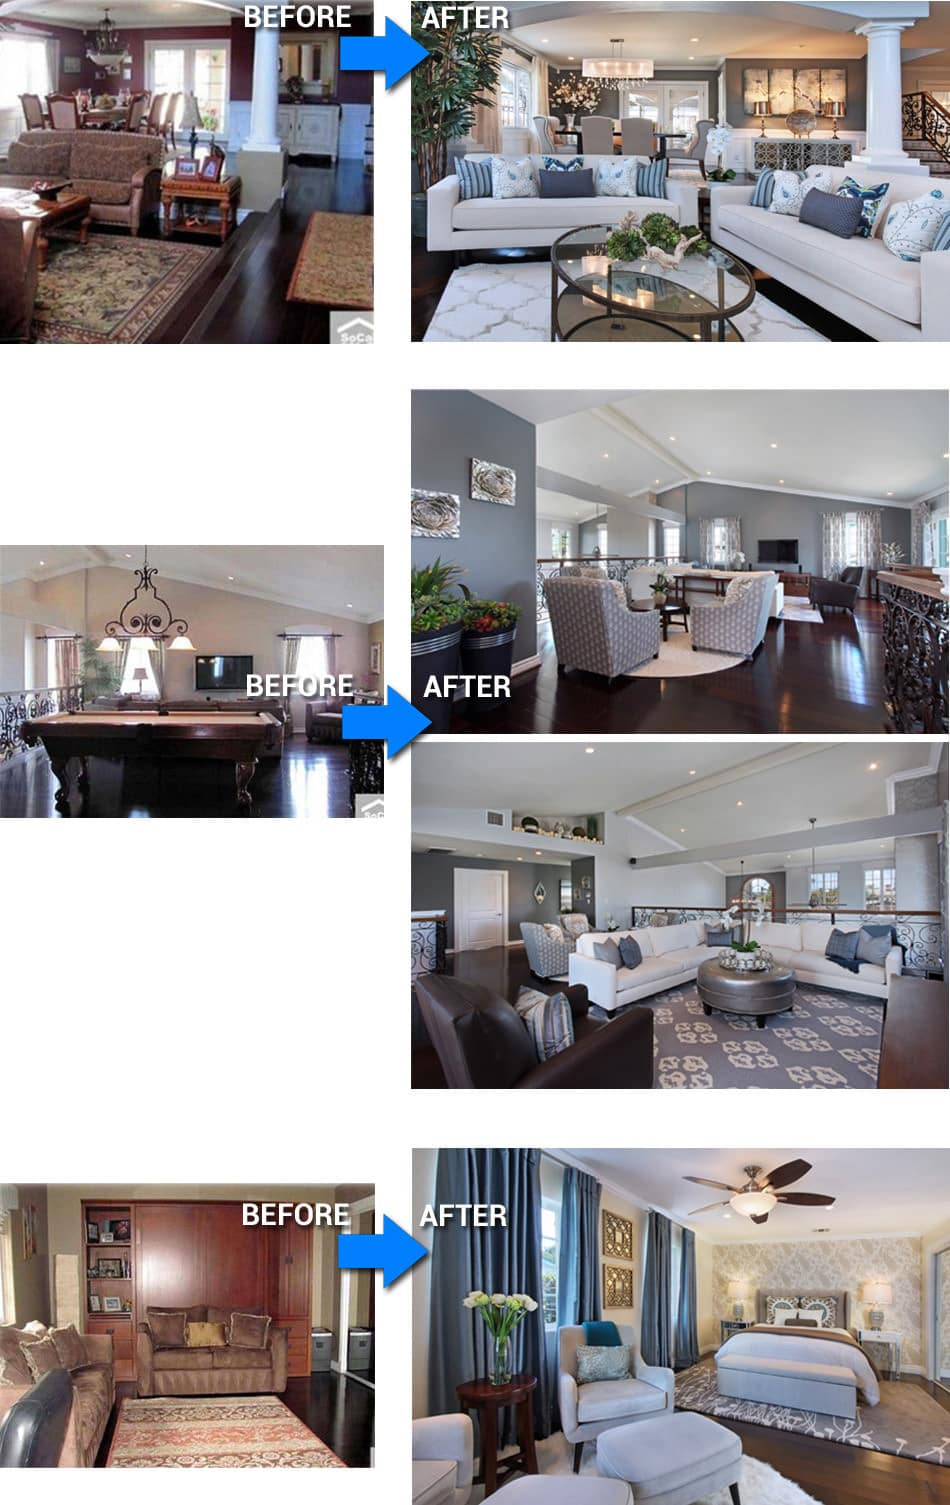 Before & After Photos - Seal Beach